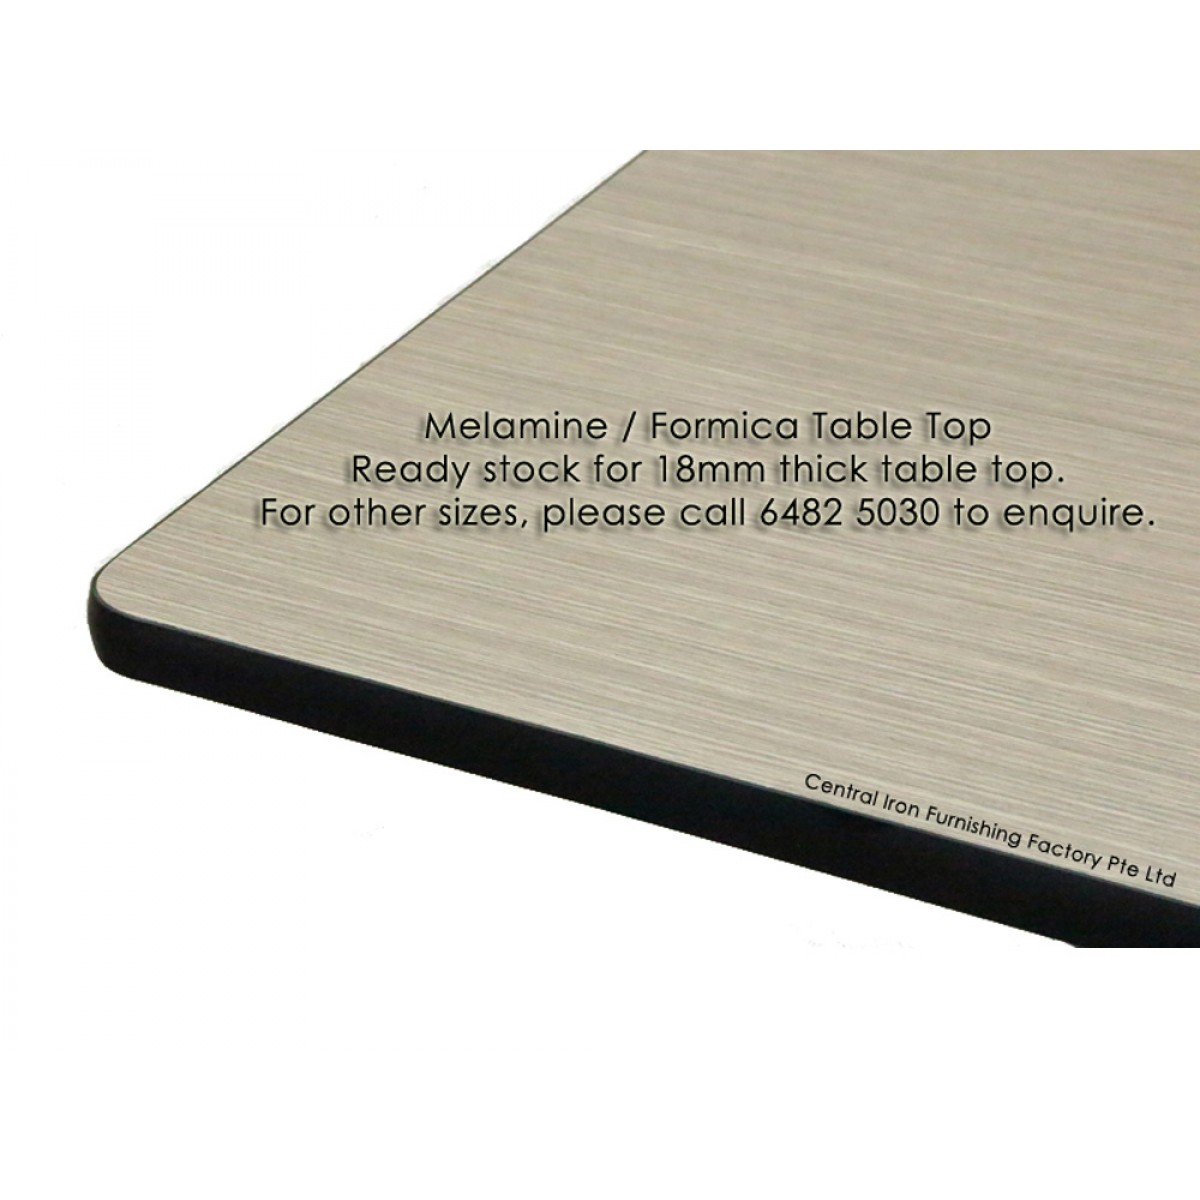 Melamine Formica Table Top